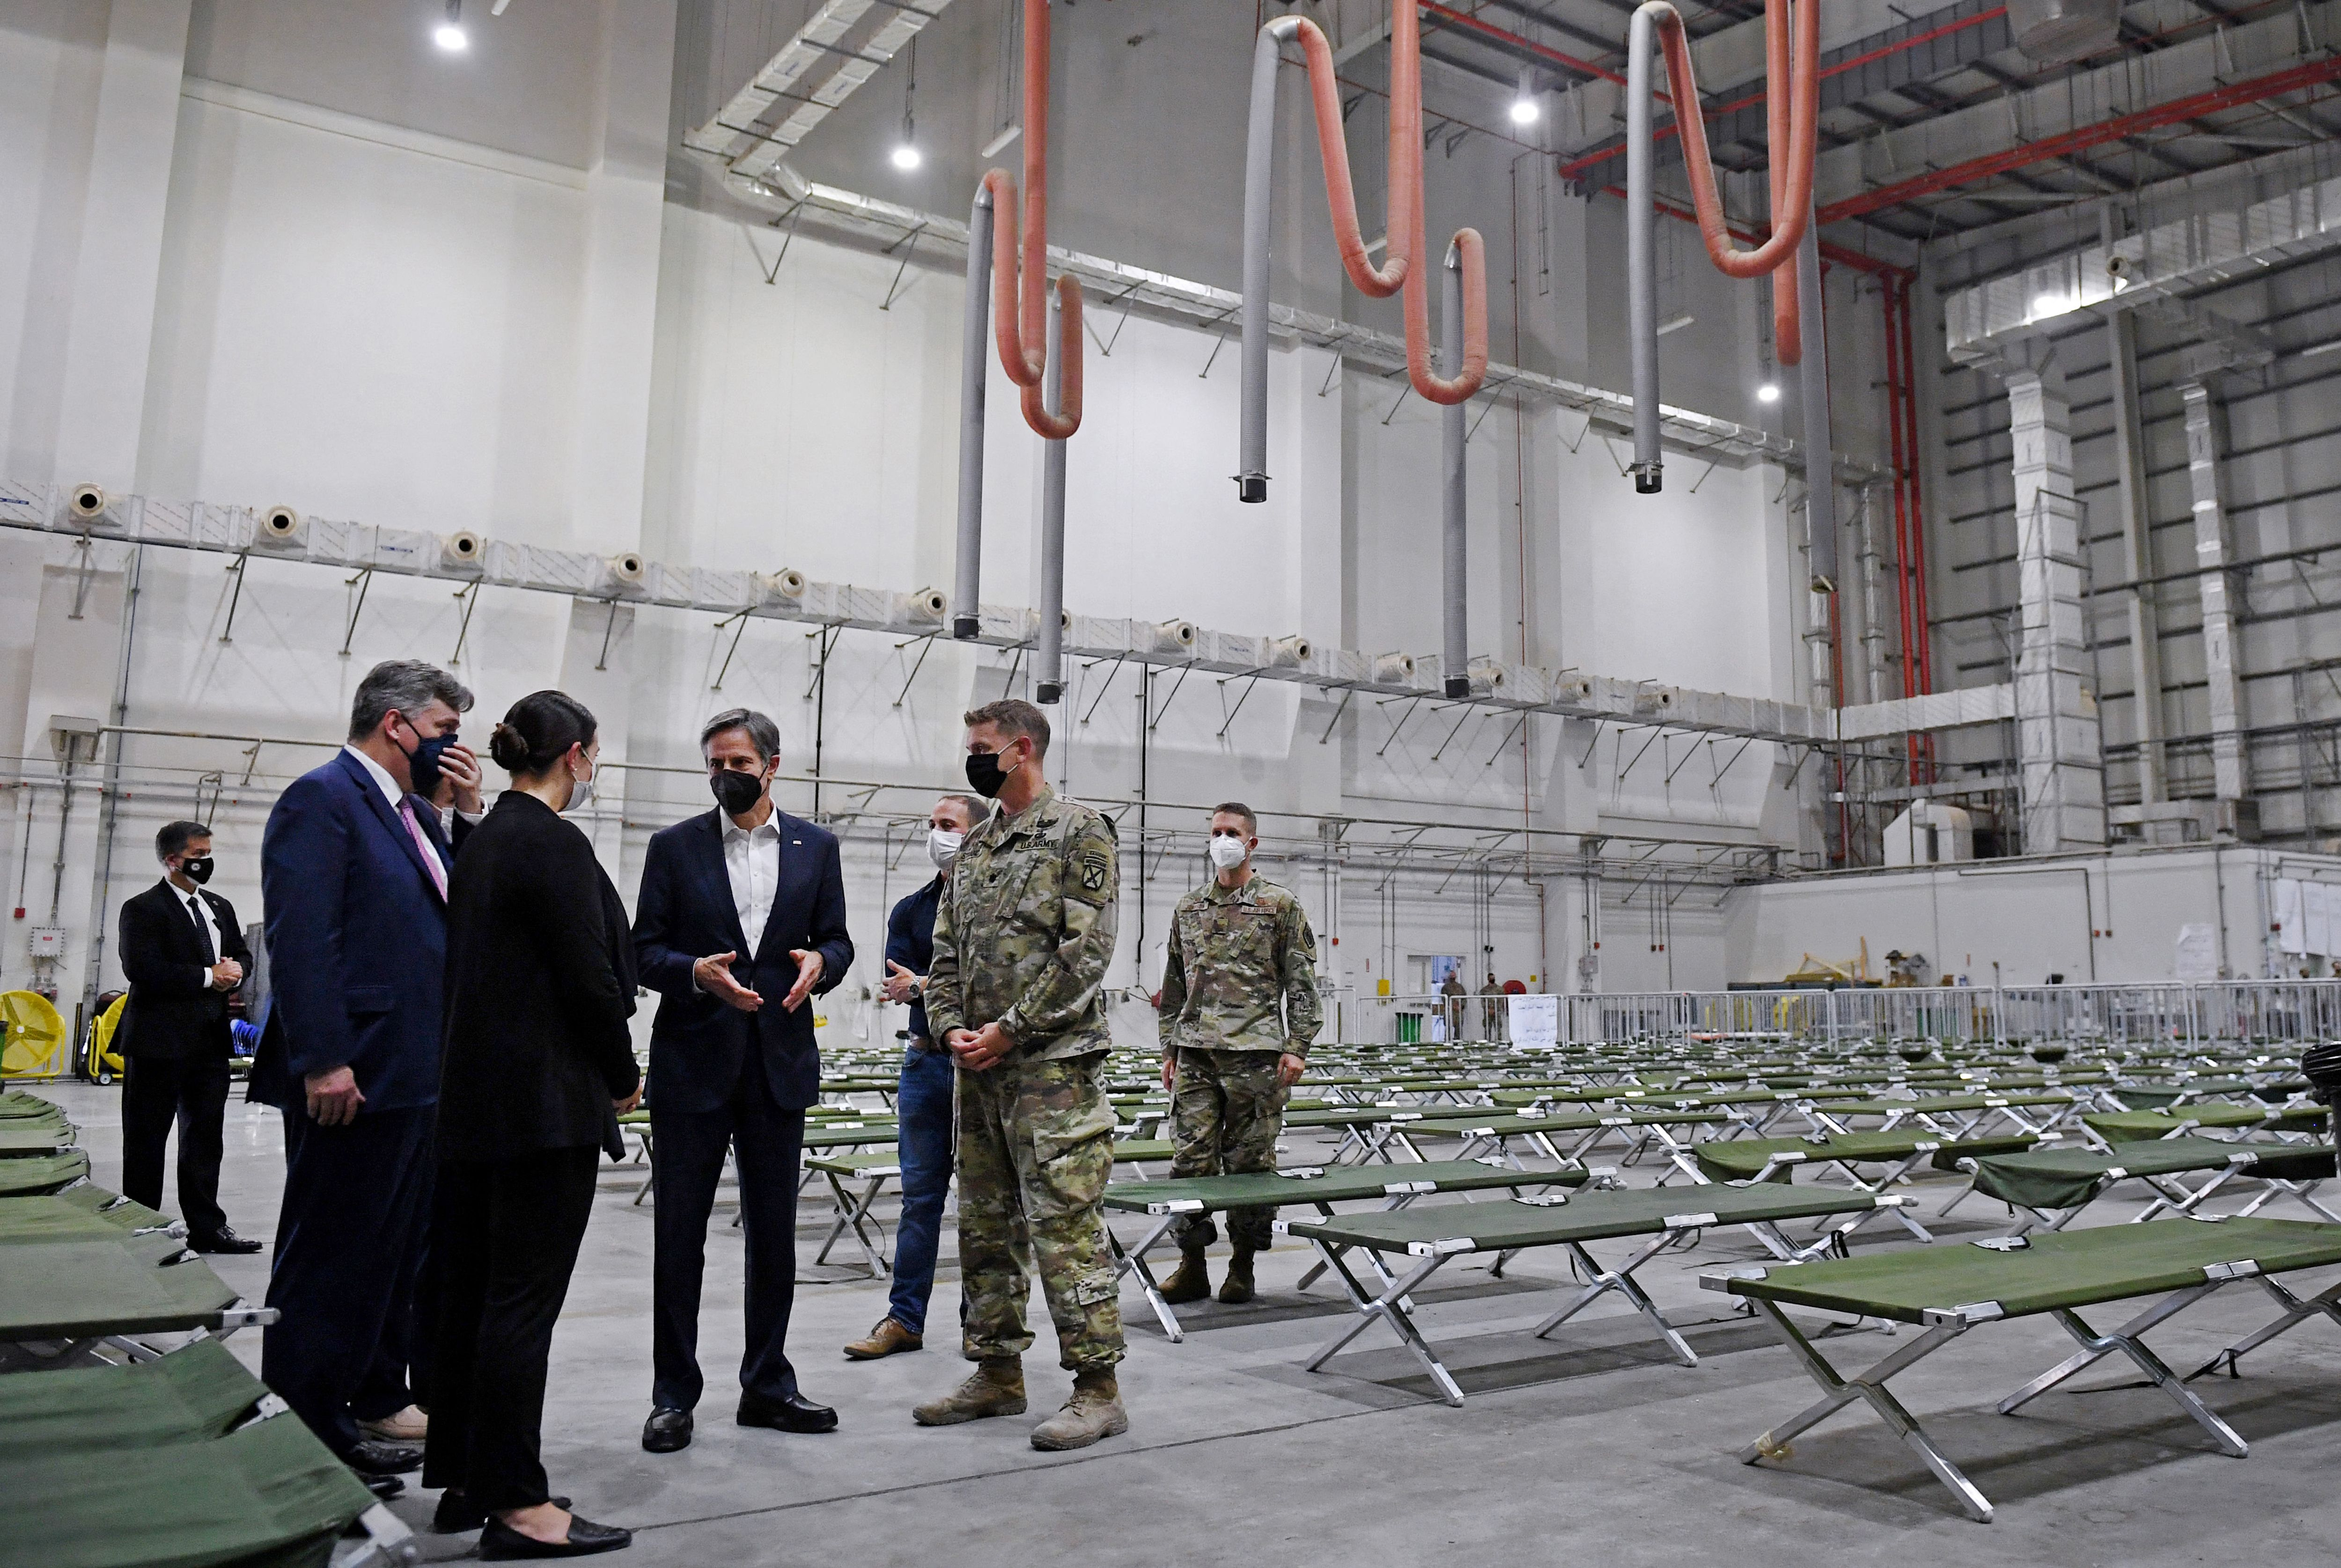 Secretary of State Antony Blinken (left) tours a processing centre for Afghan refugees at al-Udeid Air Base in the Qatari capital Doha. (Photo by OLIVIER DOULIERY/POOL/AFP via Getty Images)